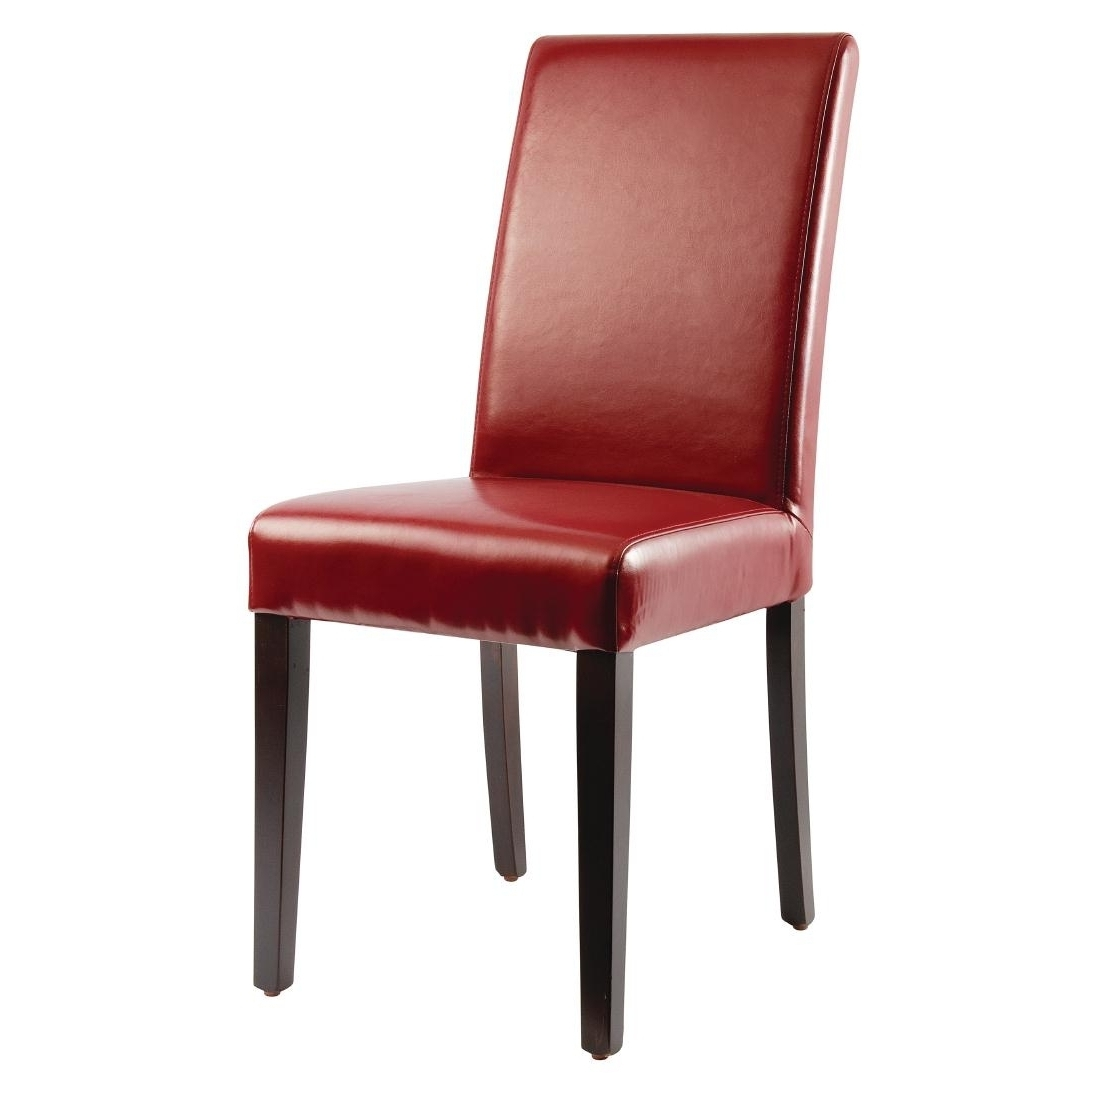 Red Leather Dining Chairs Regarding Trendy Bolero Faux Leather Dining Chairs Red (Pack Of 2) – Gh443 – Buy (View 21 of 25)